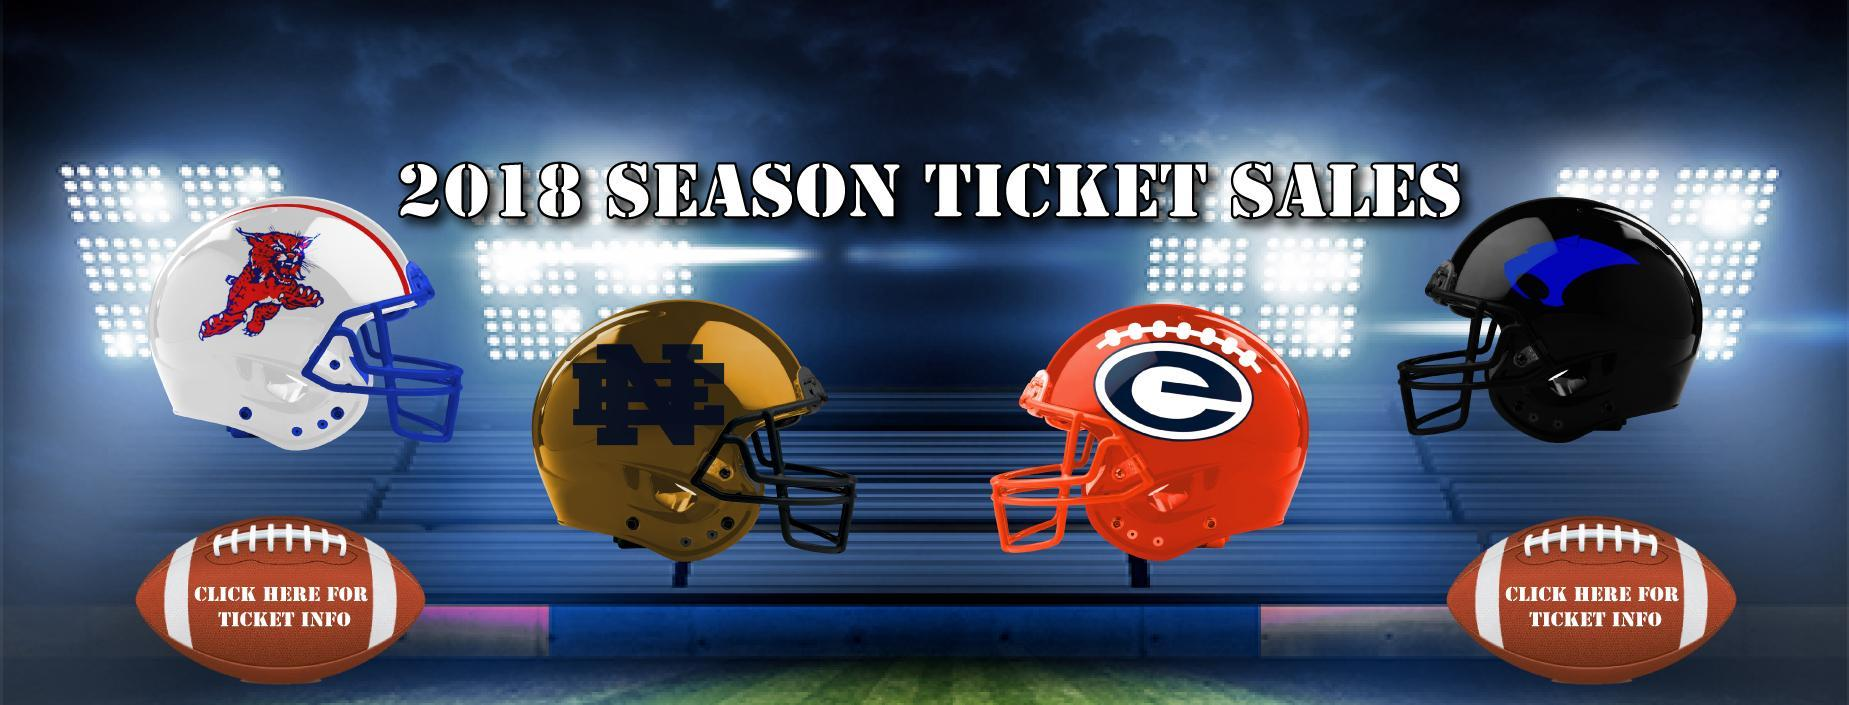 ECISD 2018 Football Season Ticket Sales Banner